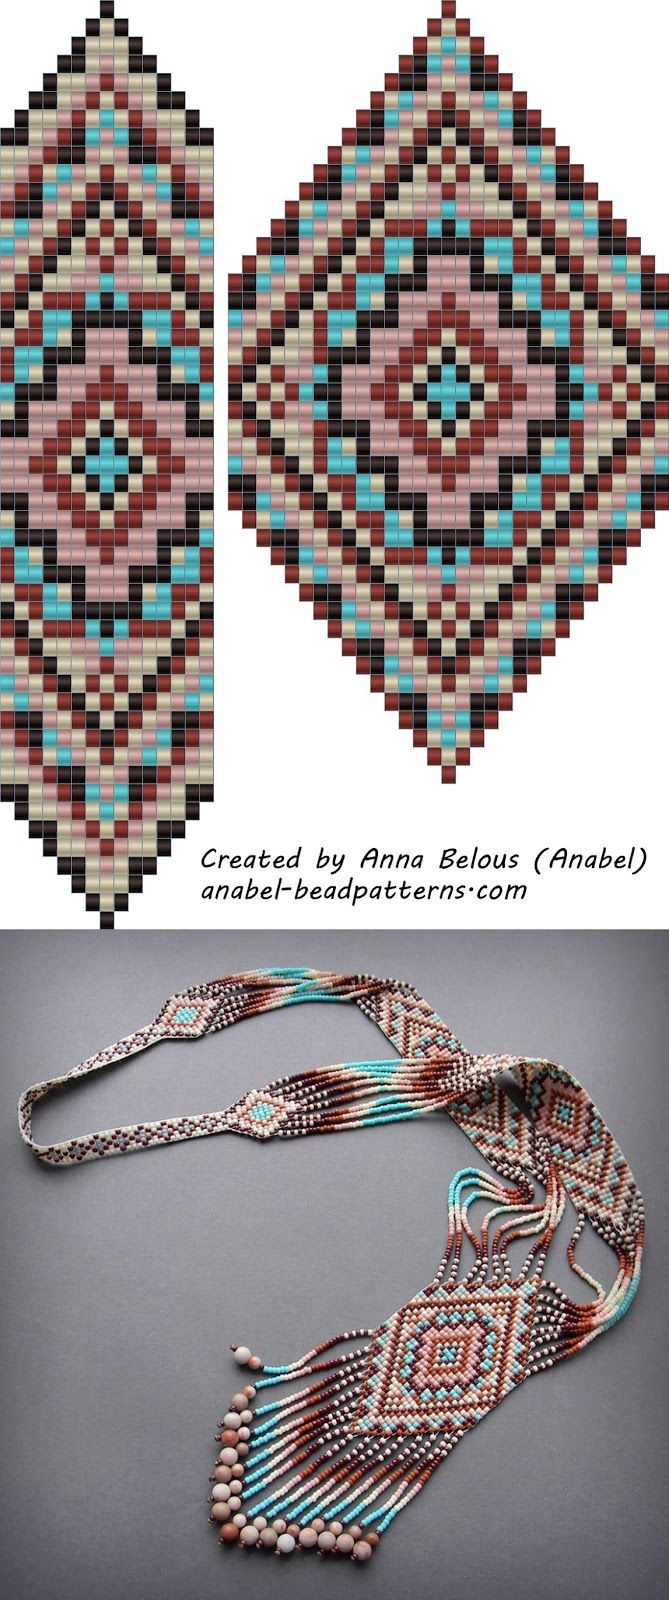 Beading Patterns Free Awesome Design Ideas